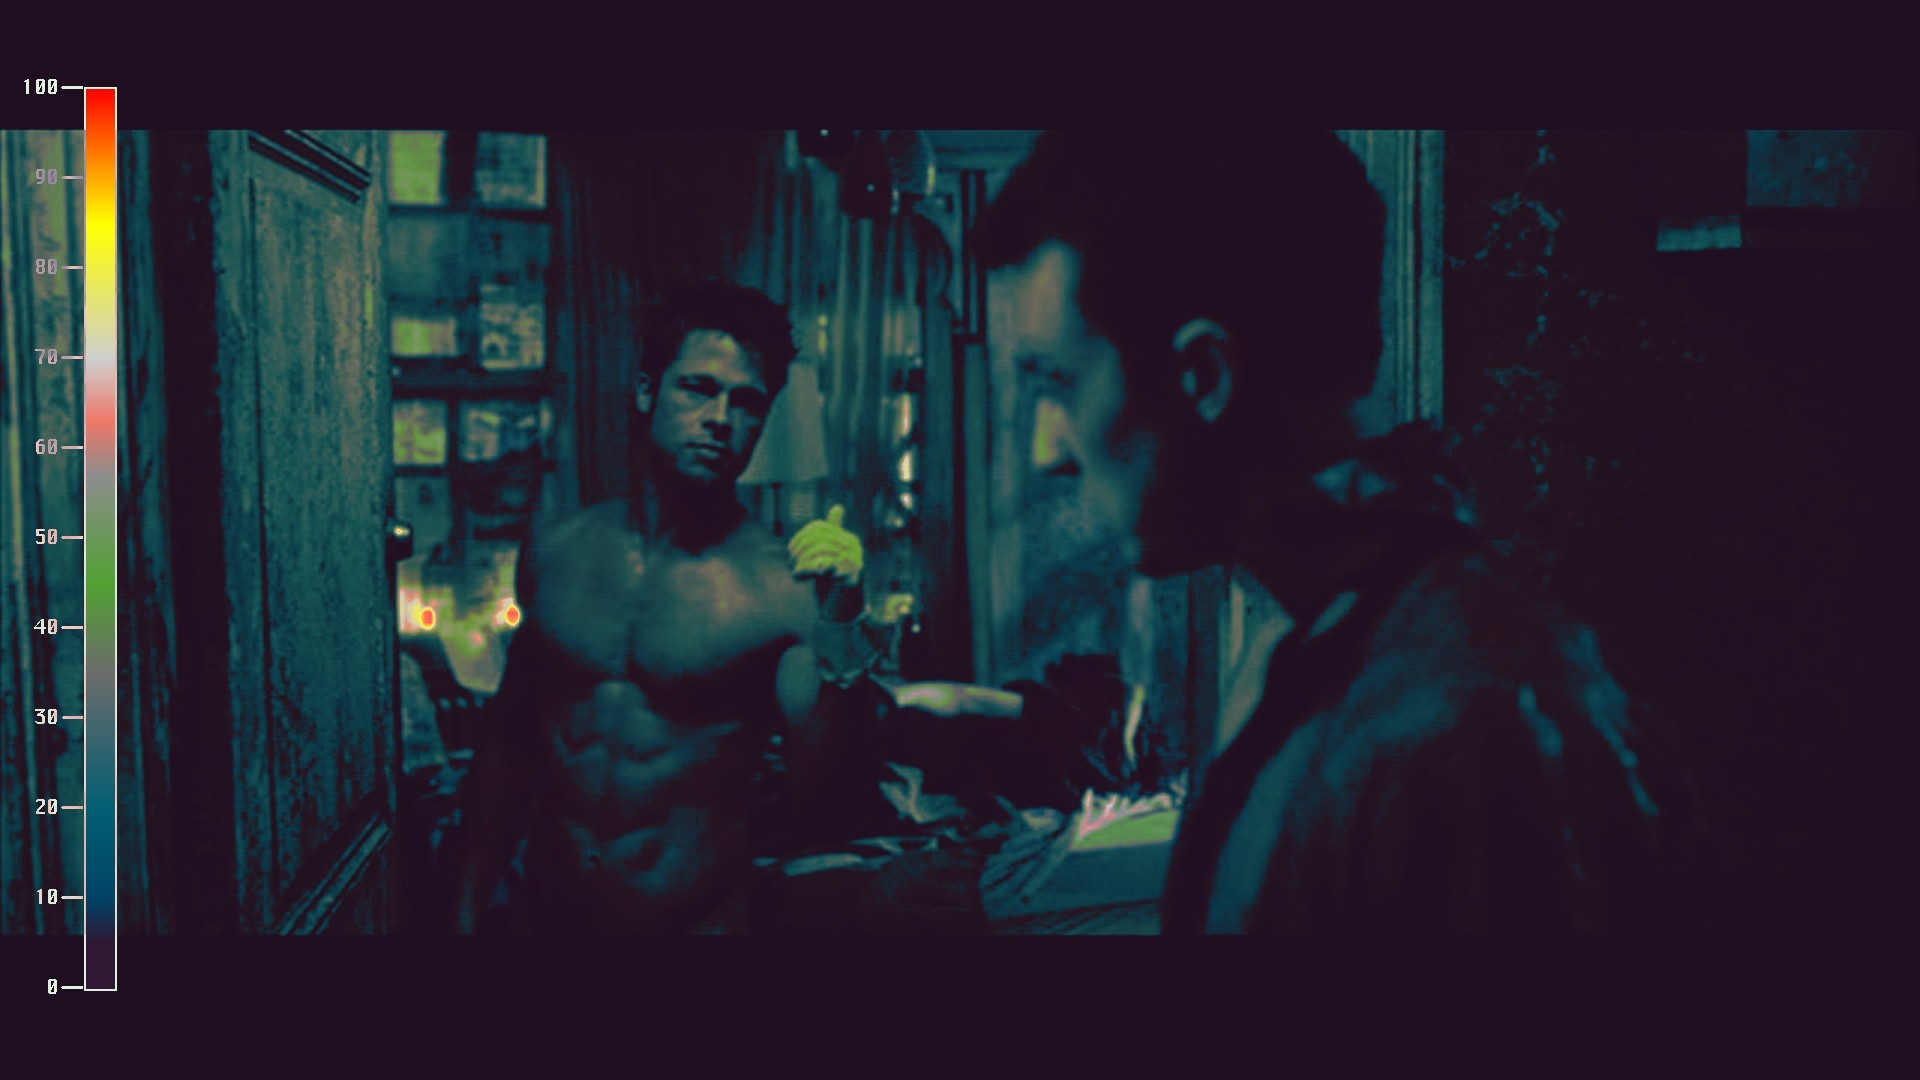 pointing issues in society in the fight club by david fincher